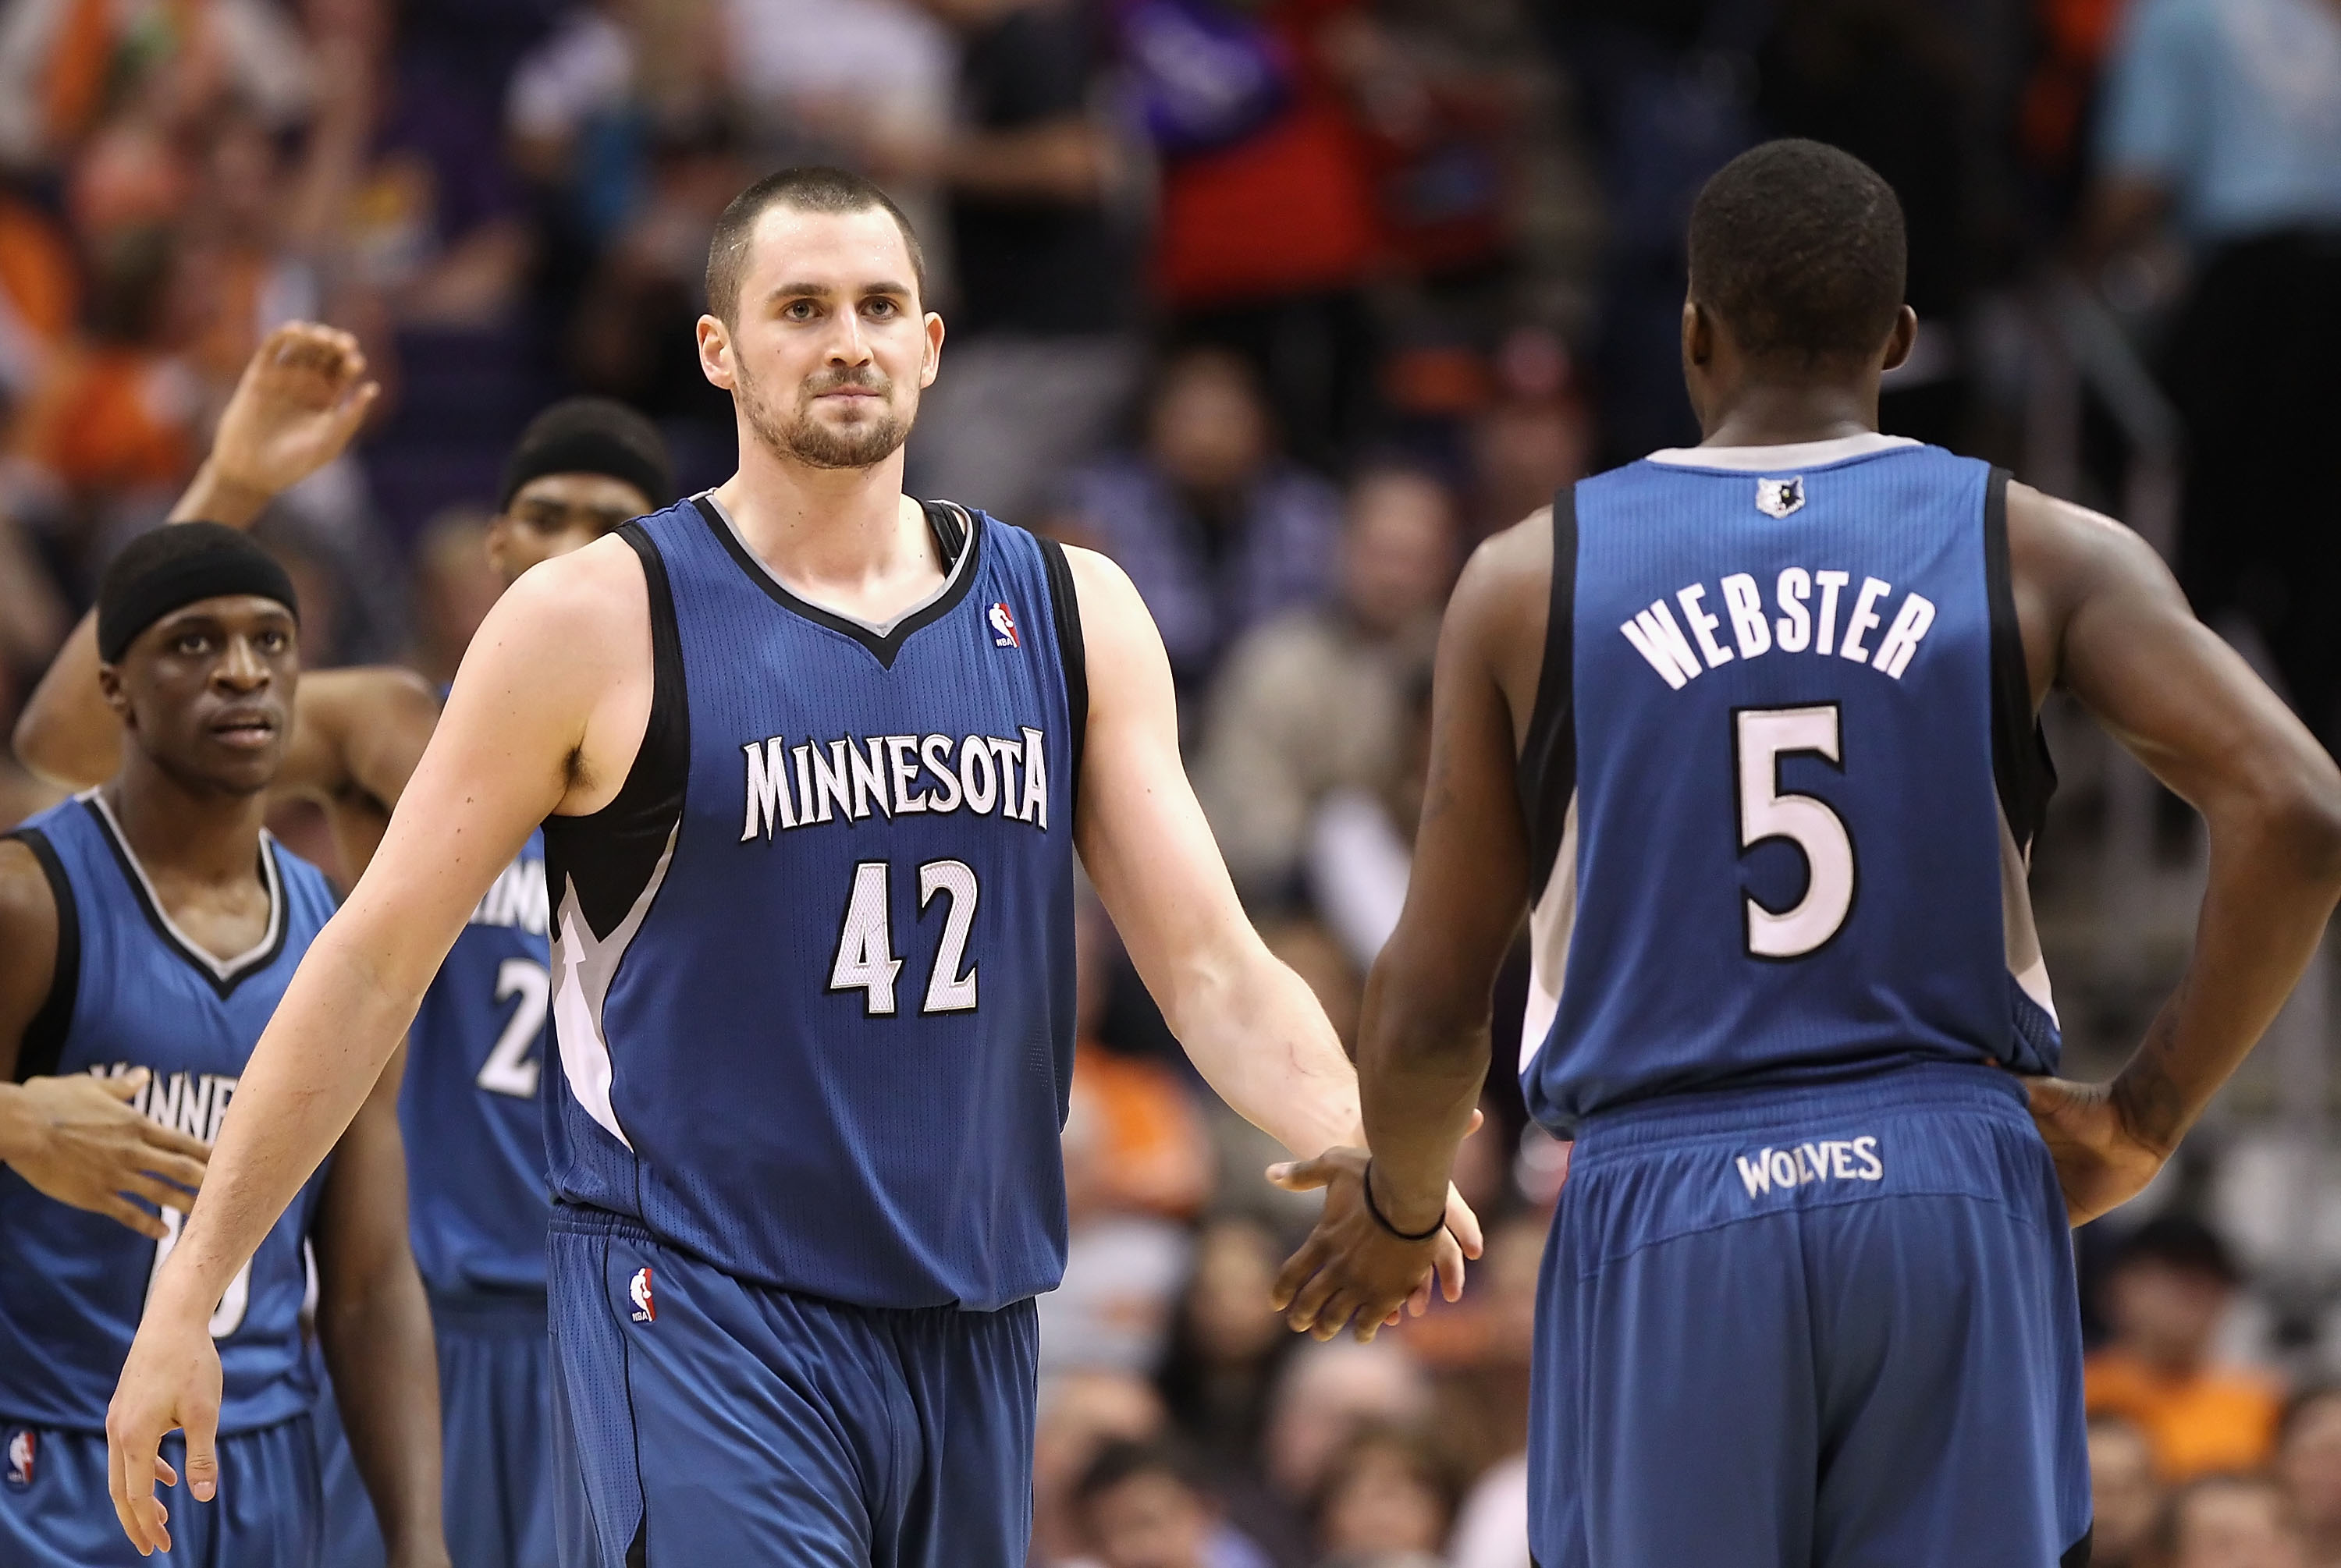 PHOENIX - DECEMBER 15:  Kevin Love #42 of the Minnesota Timberwolves high fives teammate Martell Webster #5 during the NBA game against the Phoenix Suns at US Airways Center on December 15, 2010 in Phoenix, Arizona.  The Suns defeated the Timberwolves 128